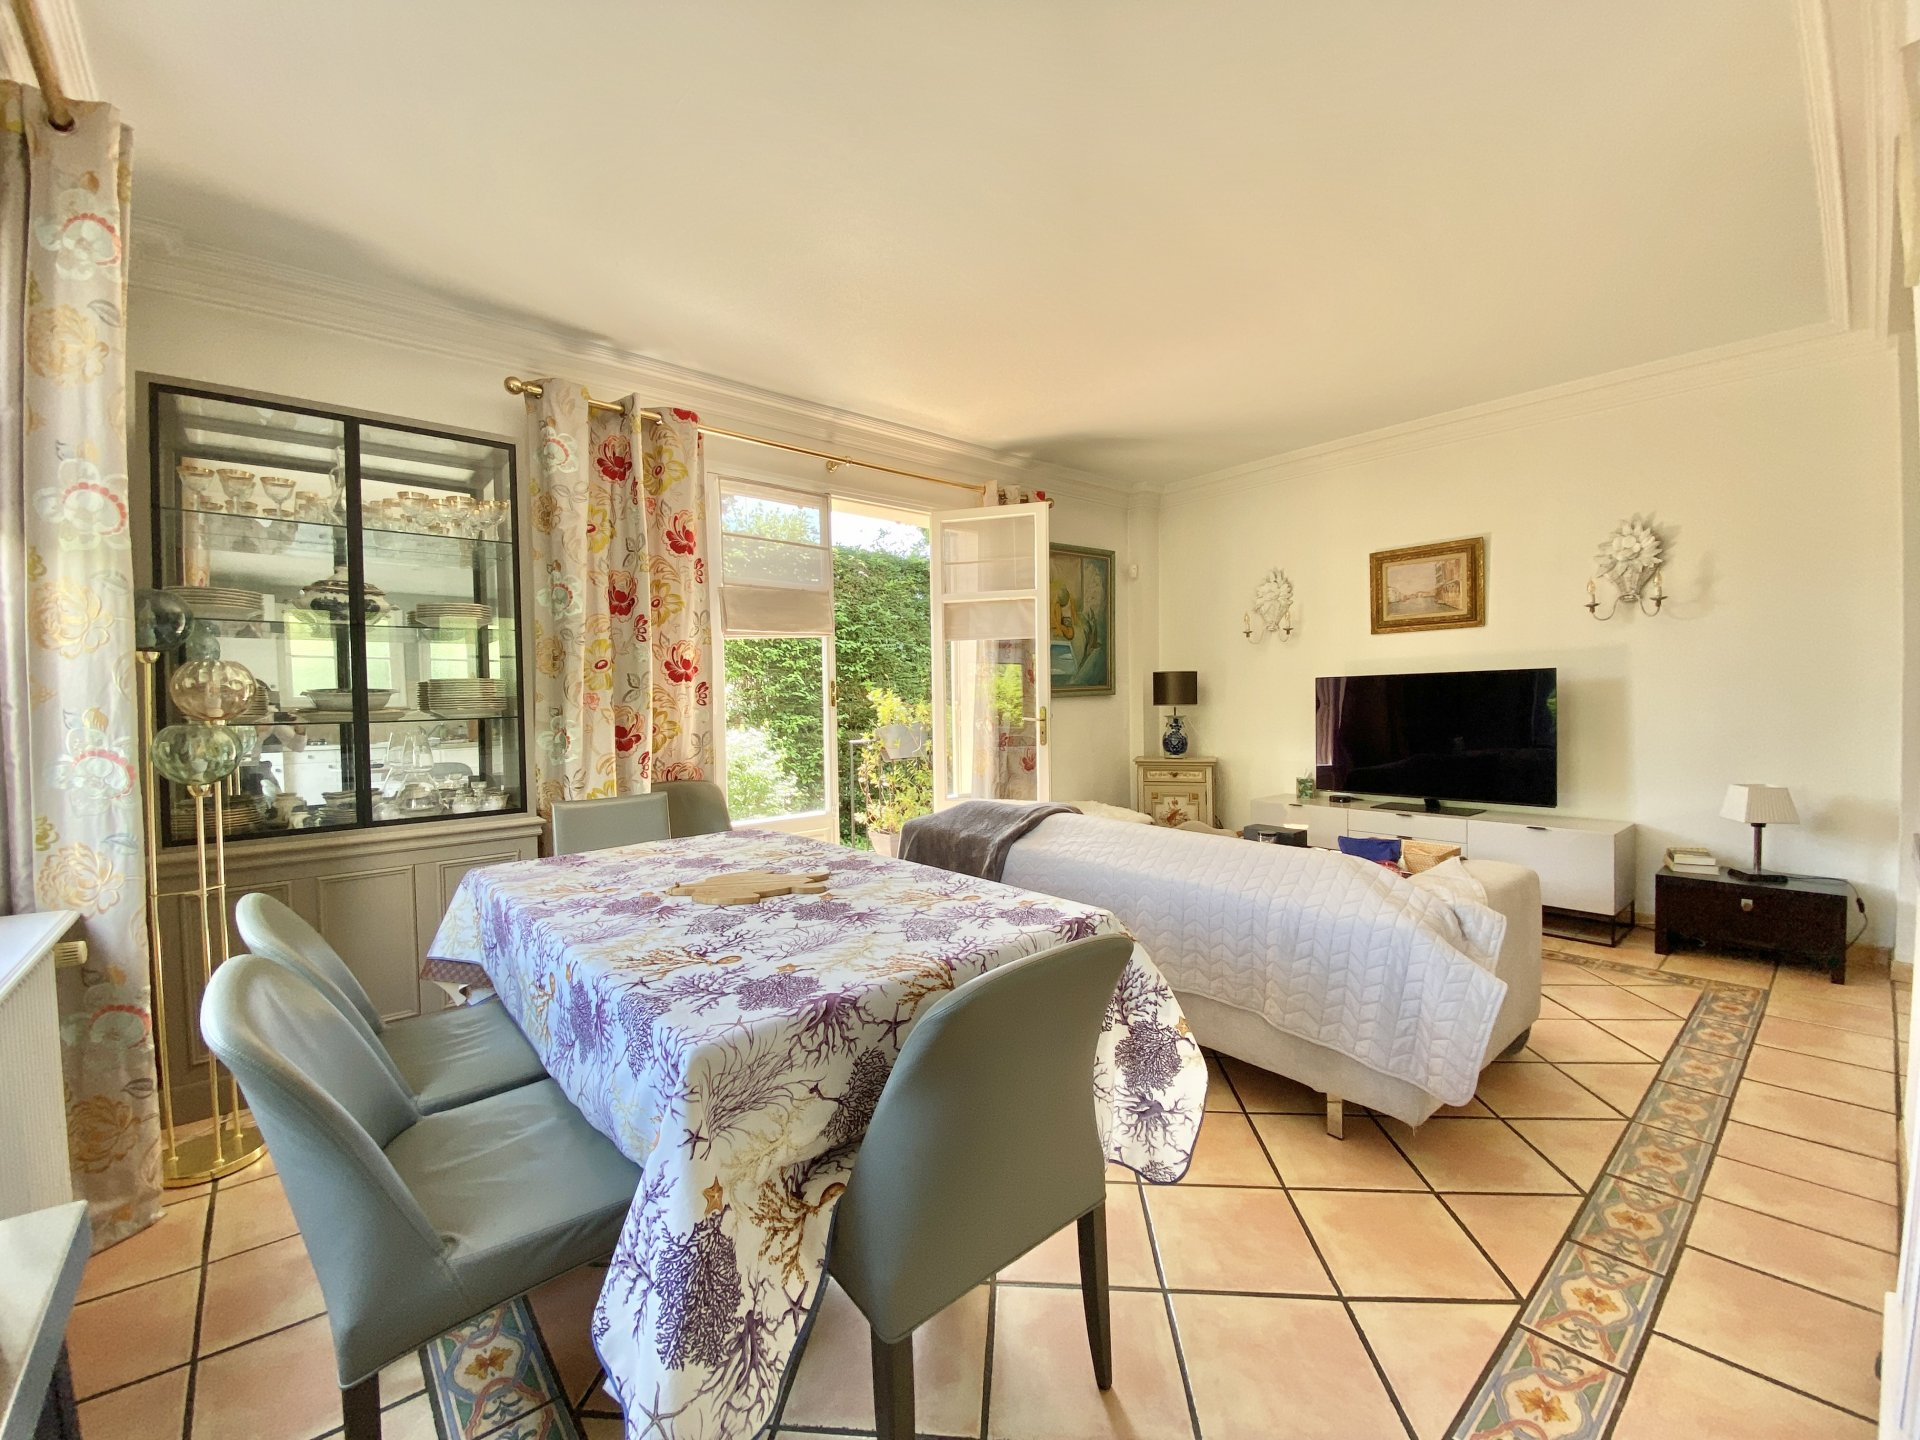 For sale - Villa walking distance from the city center - Cannes Montfleury